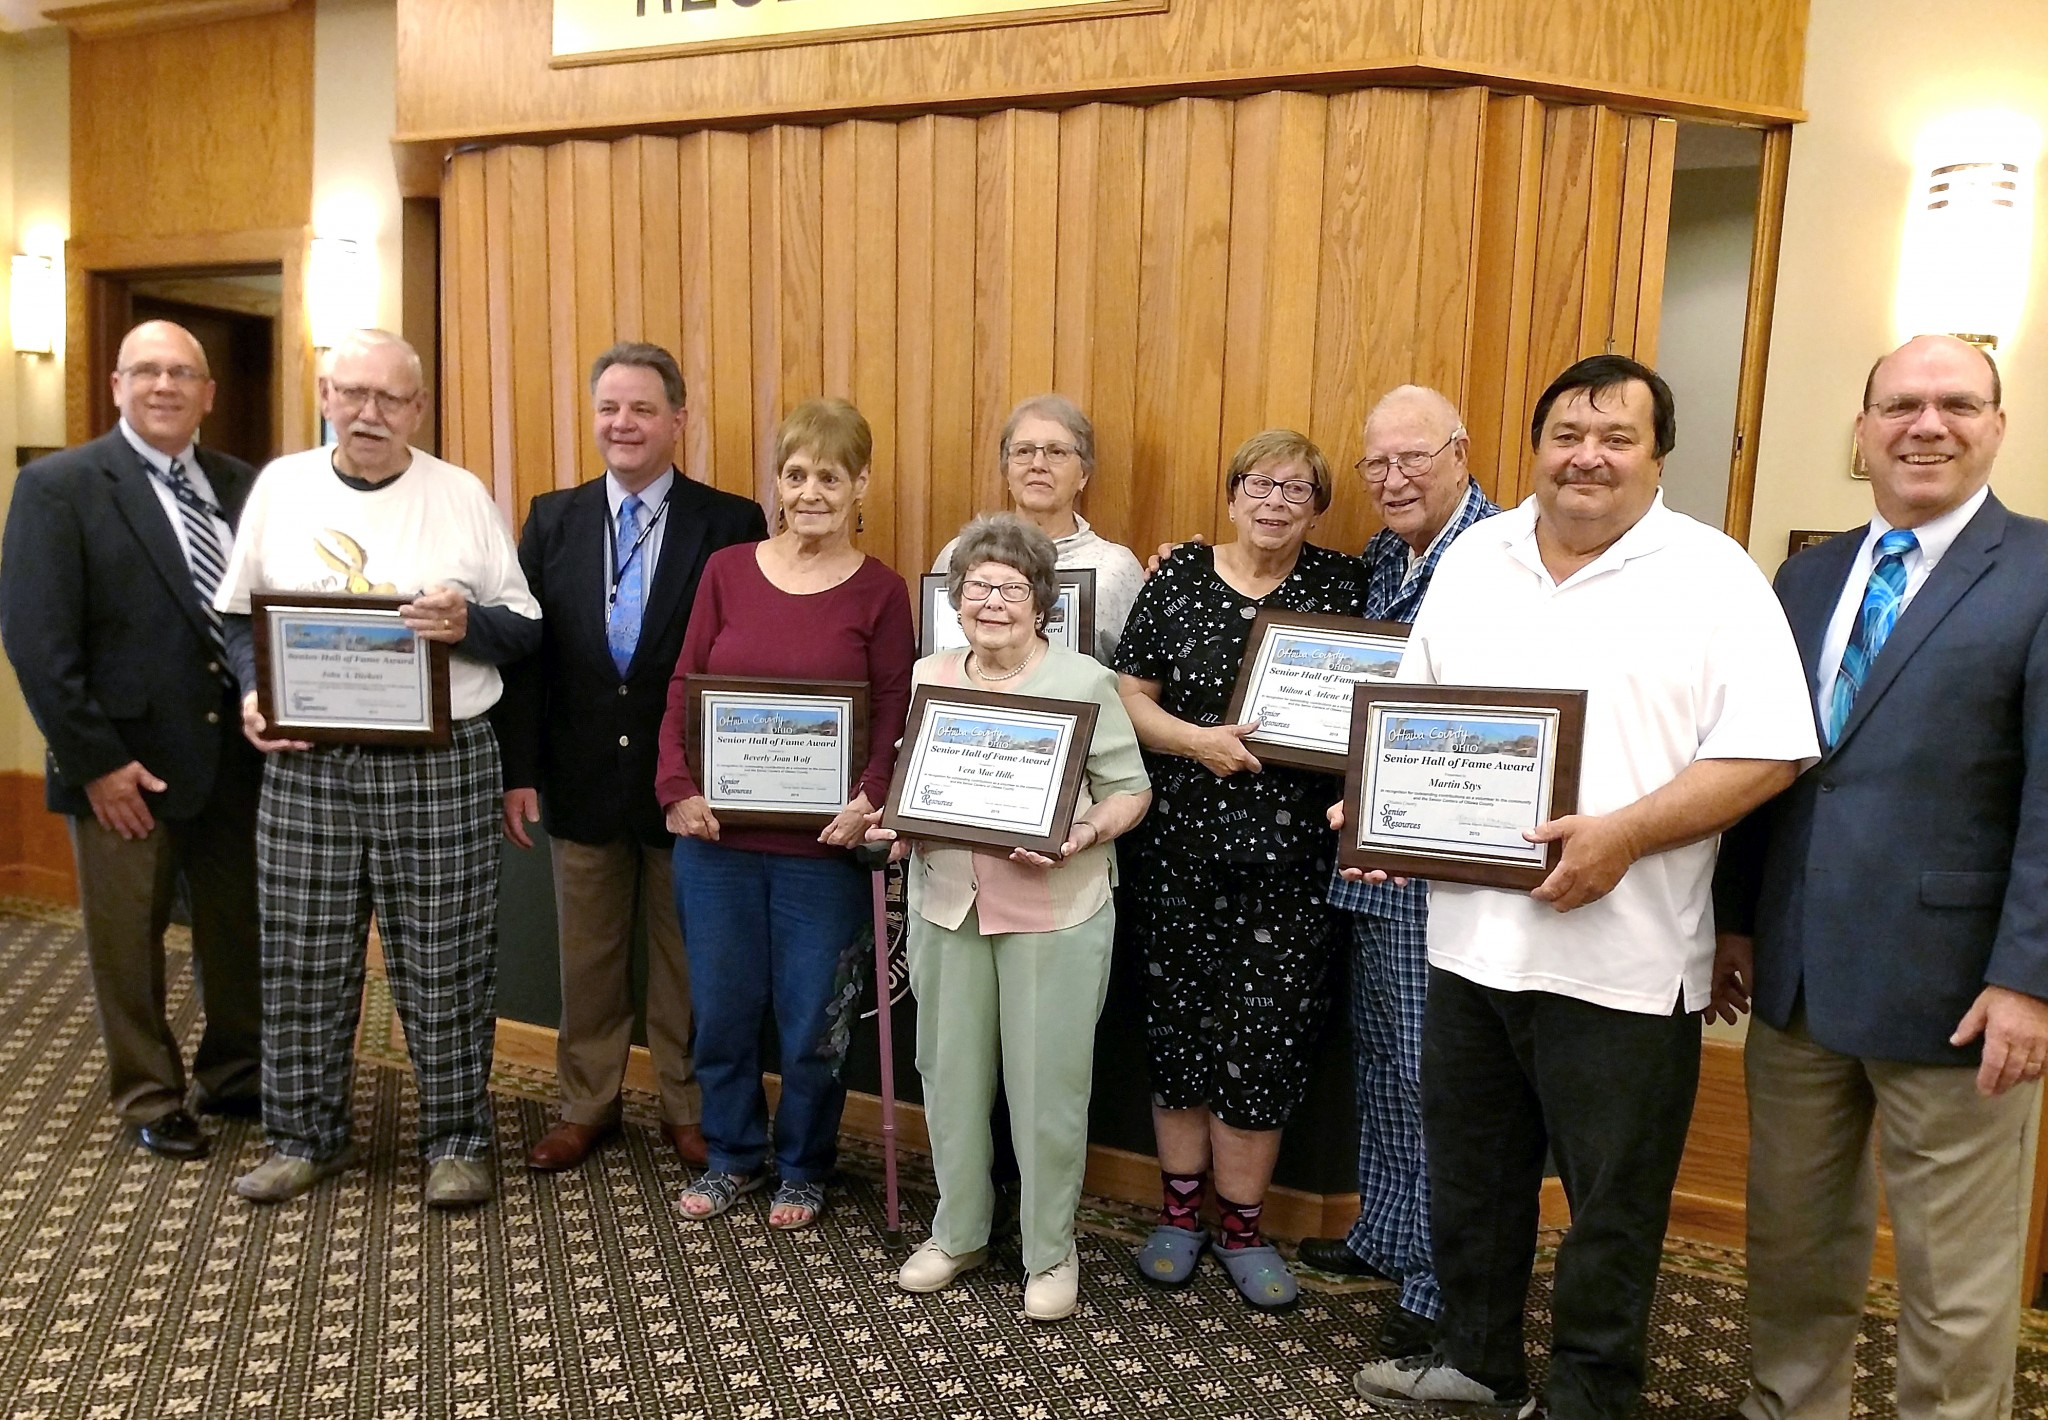 (Left to right), Ottawa County Commissioner Don Douglas, John Diebert, Commissioner Mark Stahl, Joan Wolf, Vera Hille (in front), Sara Toole, Arlene and Milton Wilburn, Marty Stys and Commissioner Mark Coppeler (Submitted photo)